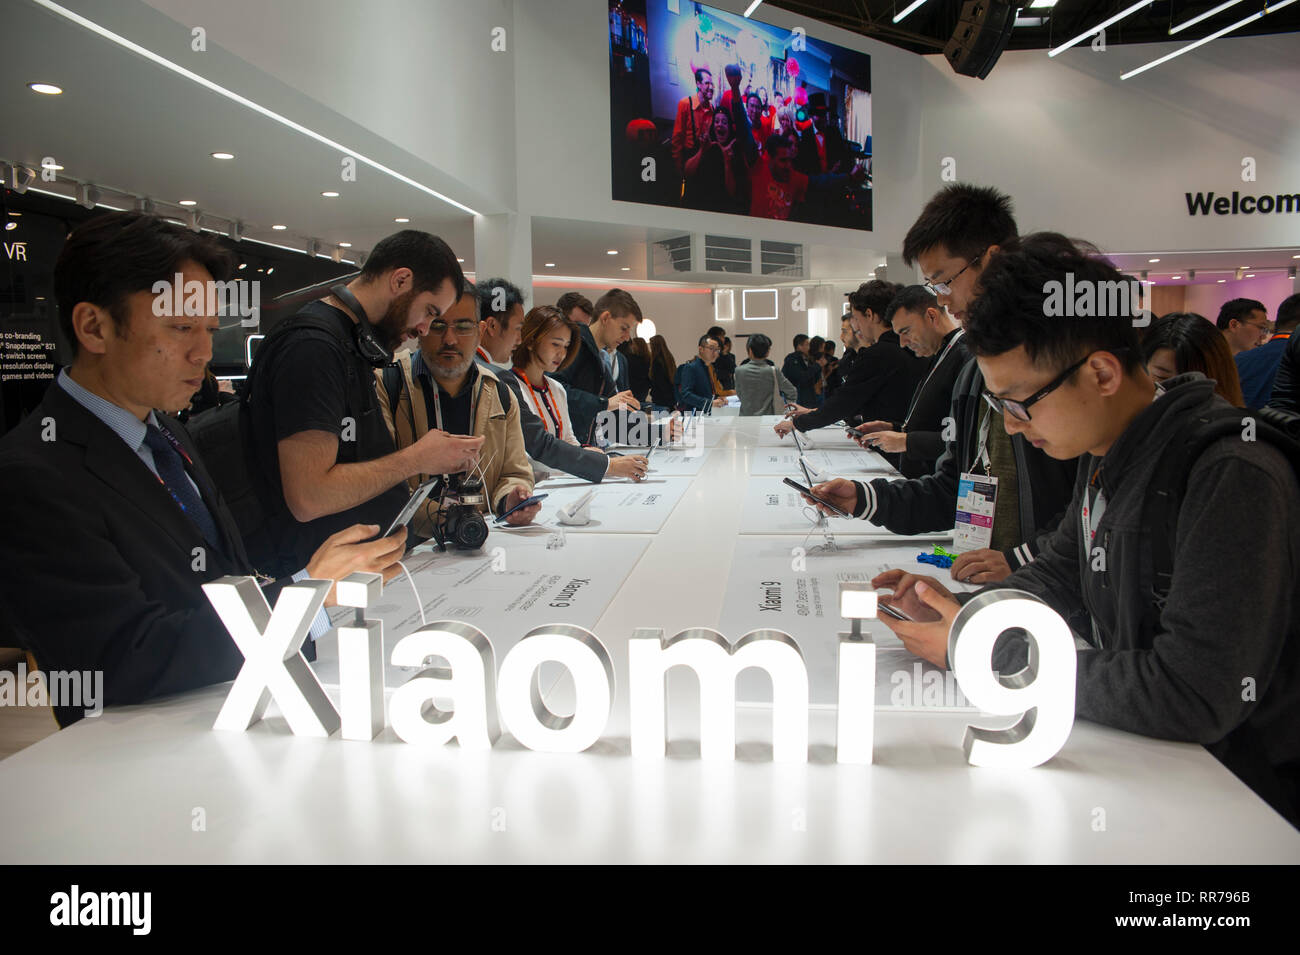 Barcelona, Spain, Monday, Feb. 25, 2019. Mobile World Congress attendees examine the new terminal of Xiaomi the Mi 9 with three cameras and integrated fingerprint reader on the screen is consolidated as the company's flagship for this 2019. The mobile congress will revolve around intelligent connectivity and address hyperconnectivity, 5G, the internet of things, artificial intelligence (AI) and big data. Credit: Charlie Perez/Alamy Live News Stock Photo